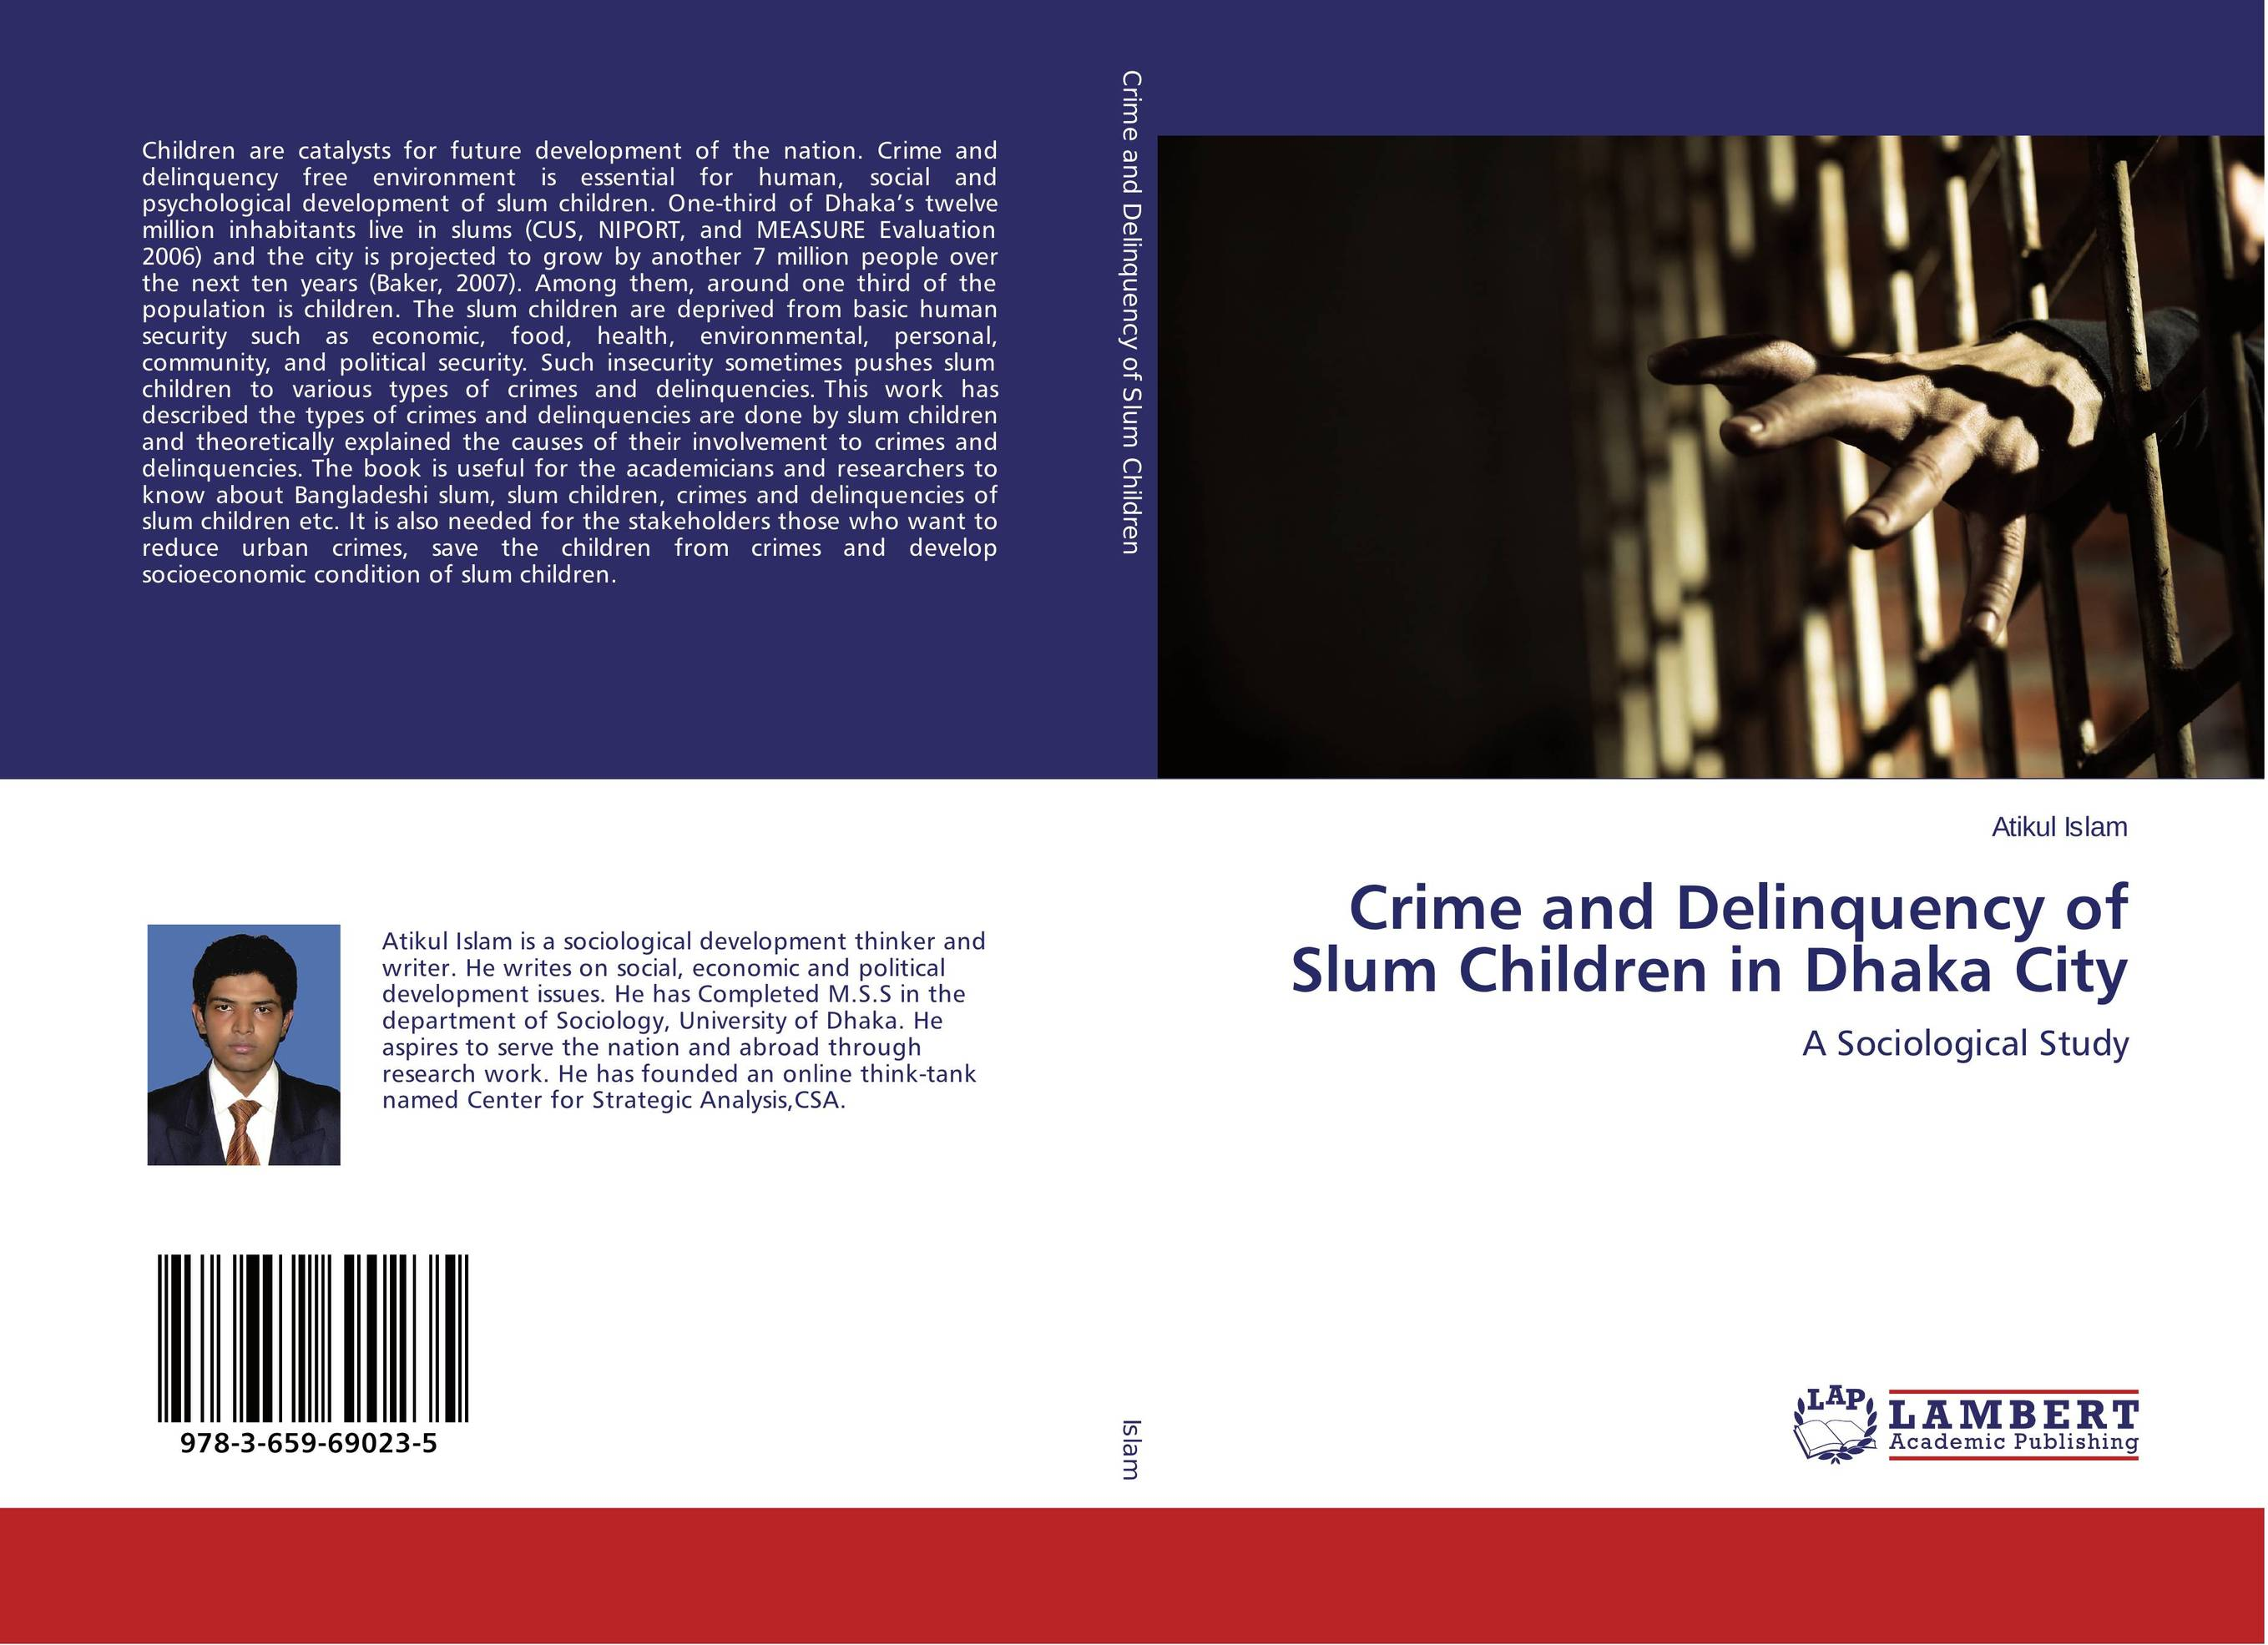 Crime and Delinquency of Slum Children in Dhaka City slum upgrading and its contribution to environment sustainability